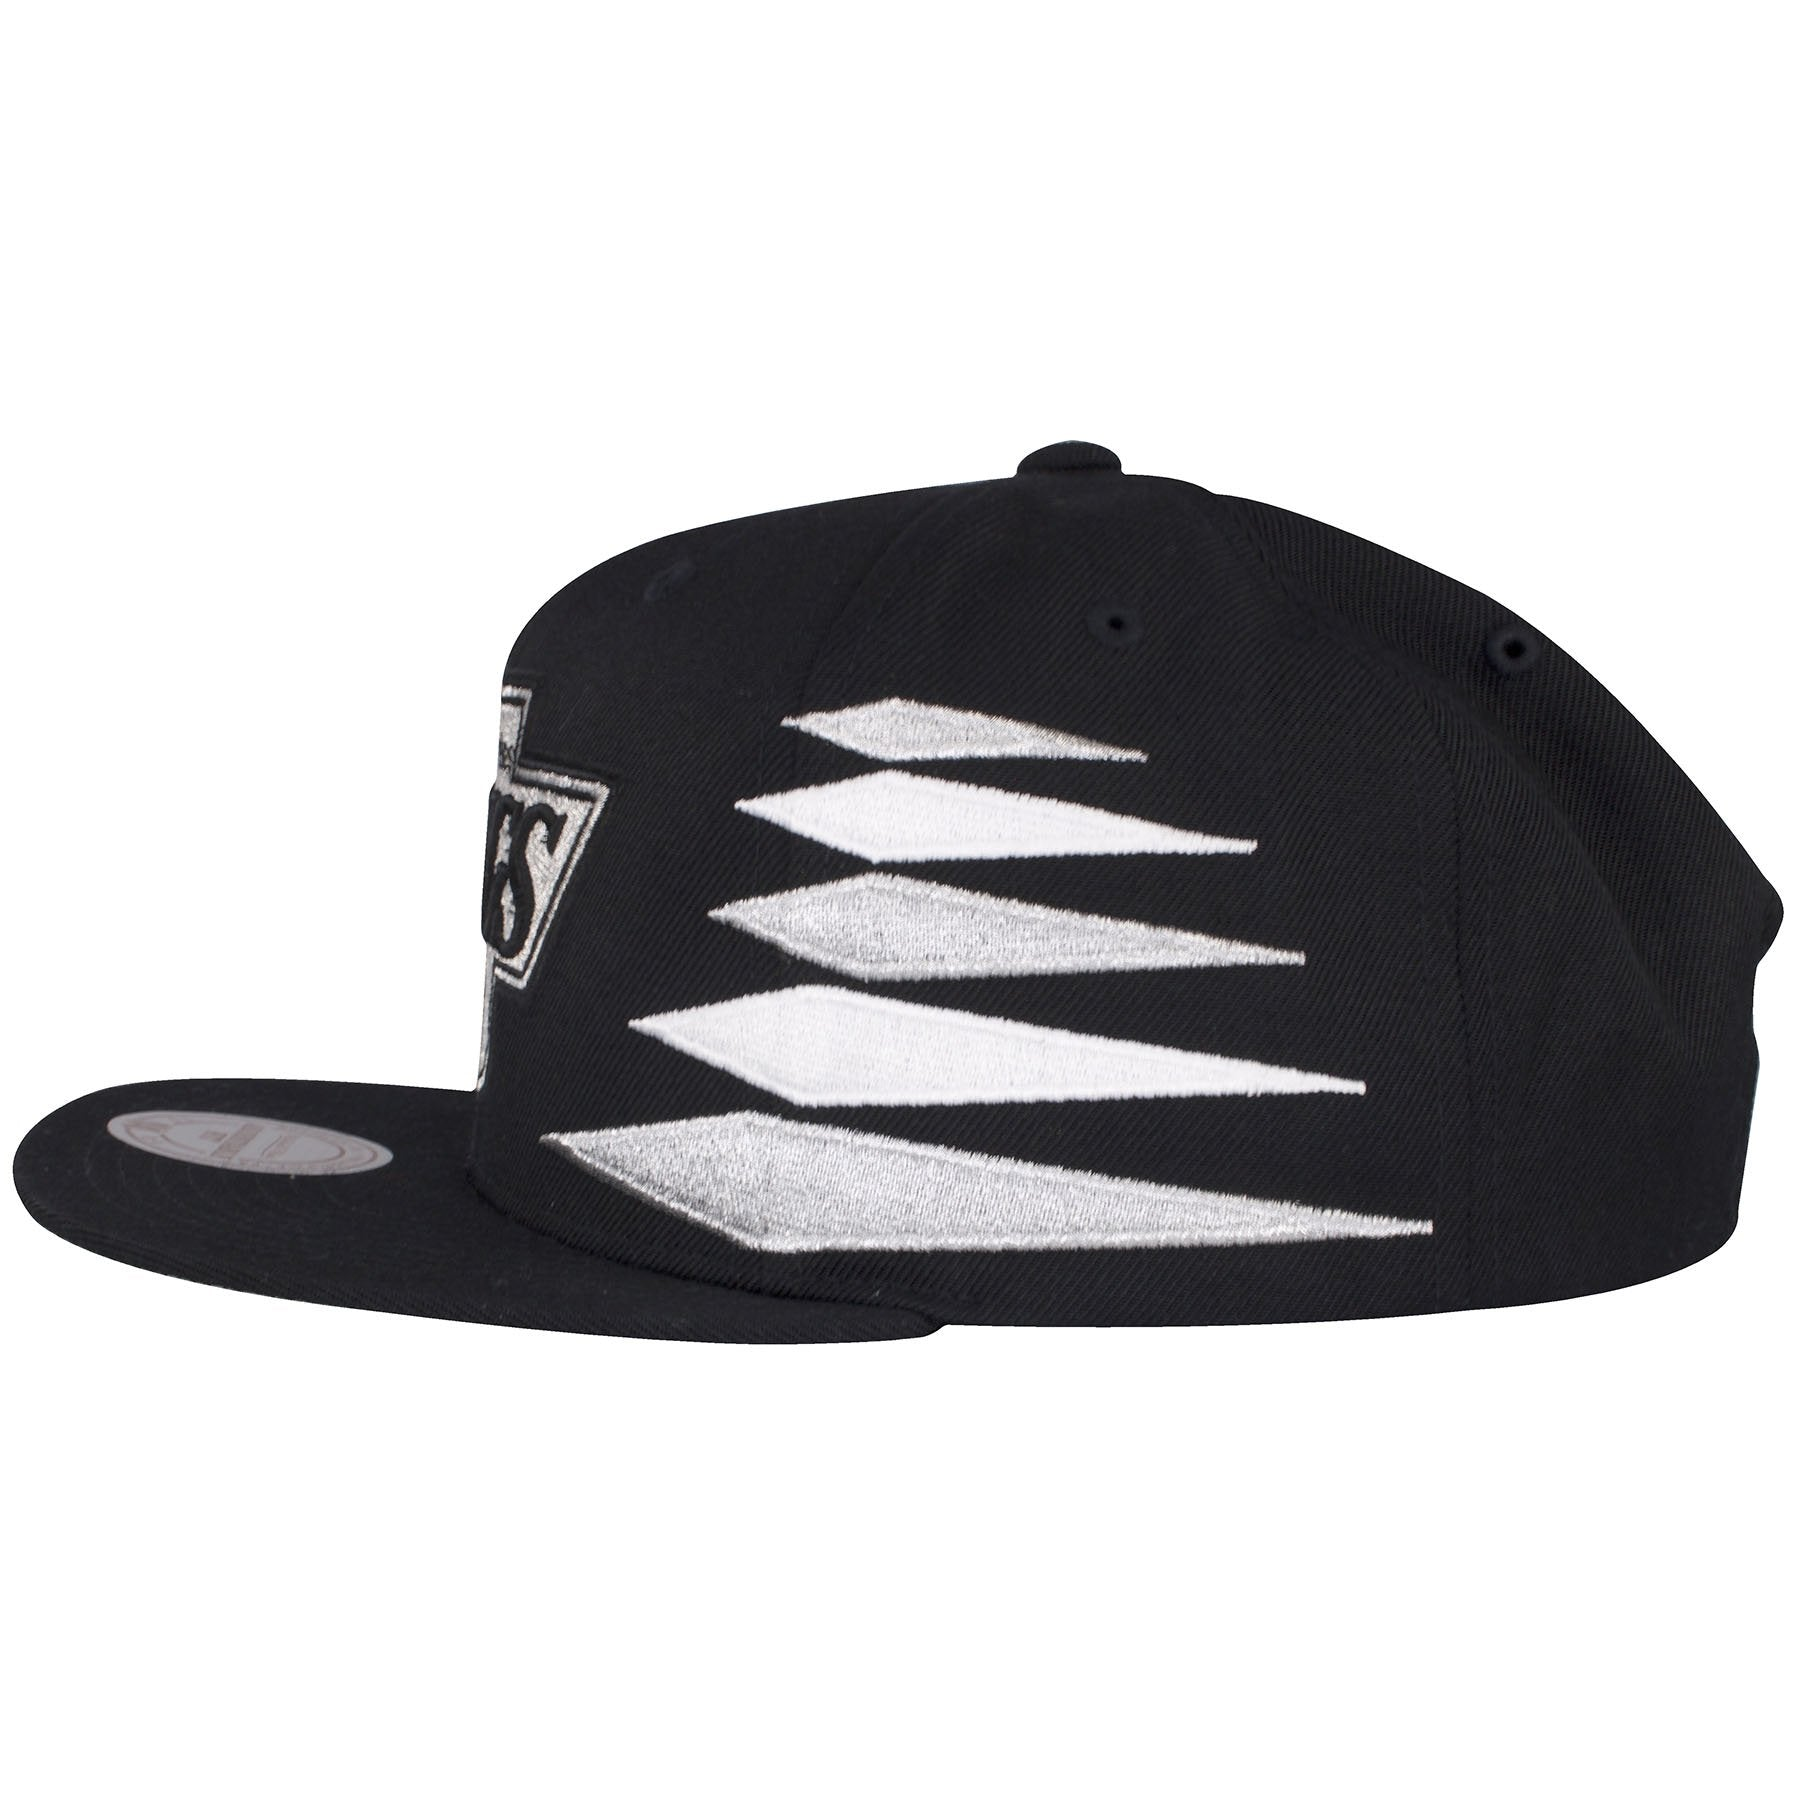 quality design aa481 60f0a ... on the side of los angeles kings diamond spikes snapback hat are  diamond embroidered spikes in ...